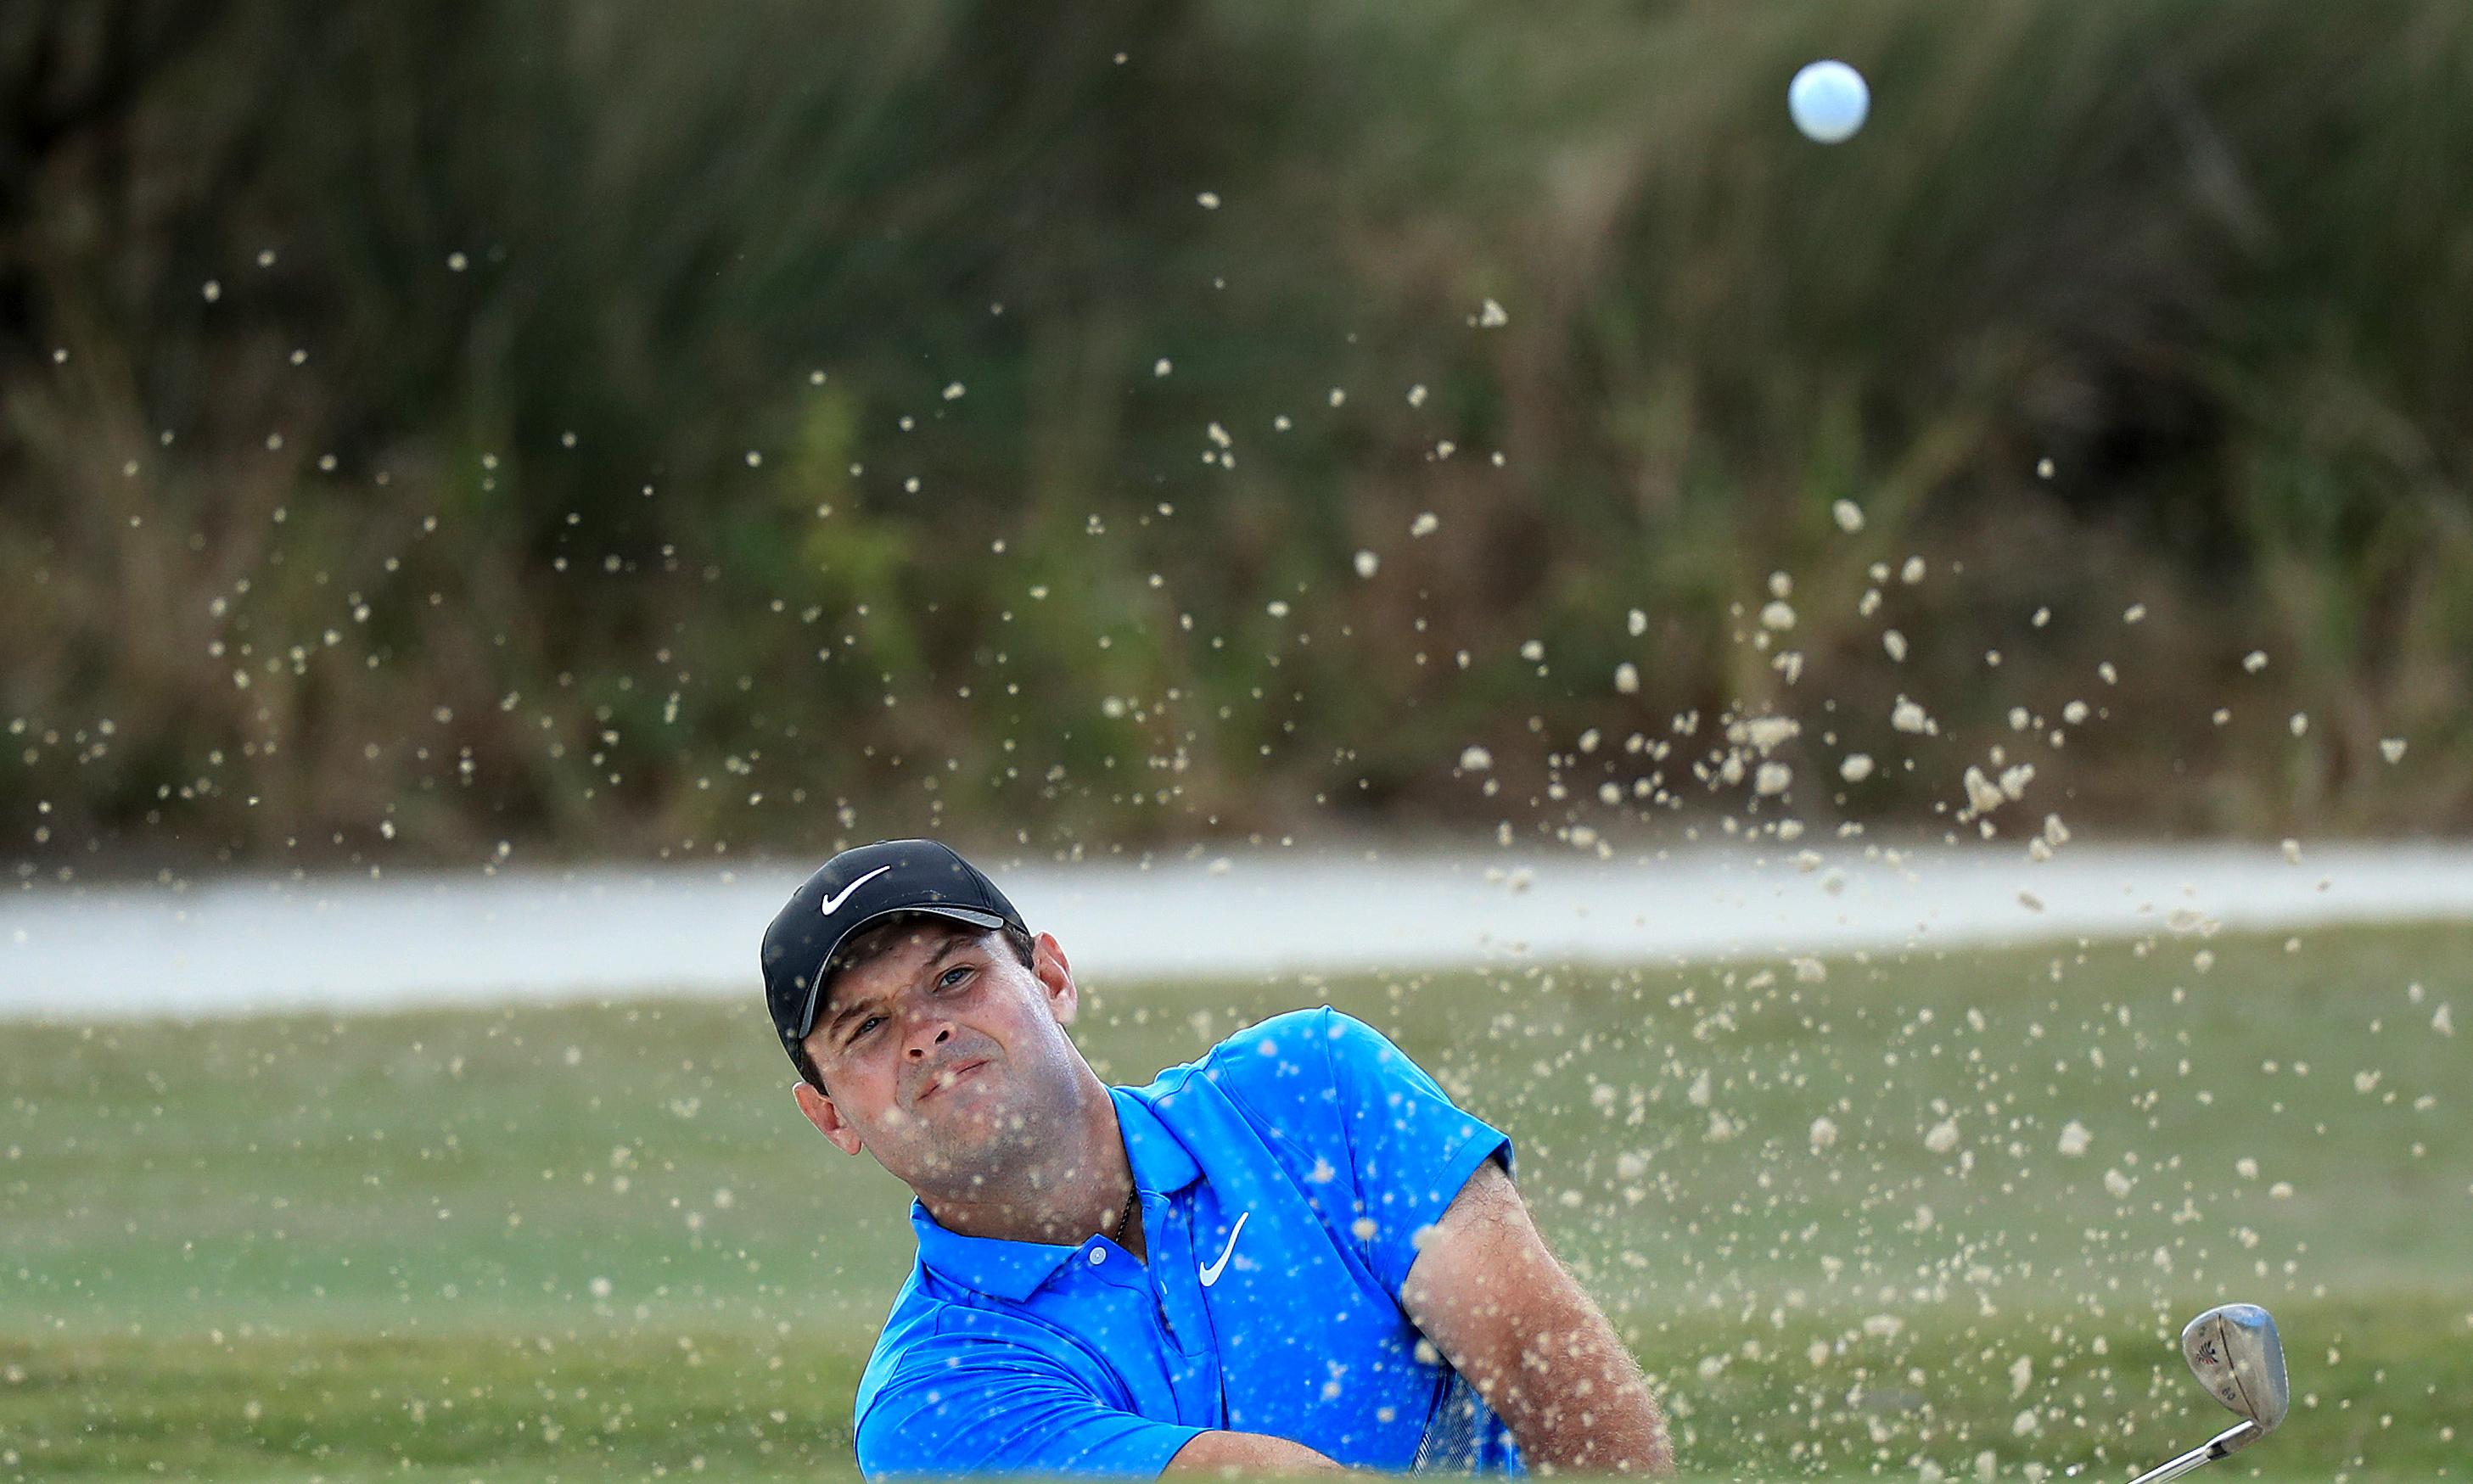 Patrick Reed 'was building sandcastles' at Bahamas event, says Koepka